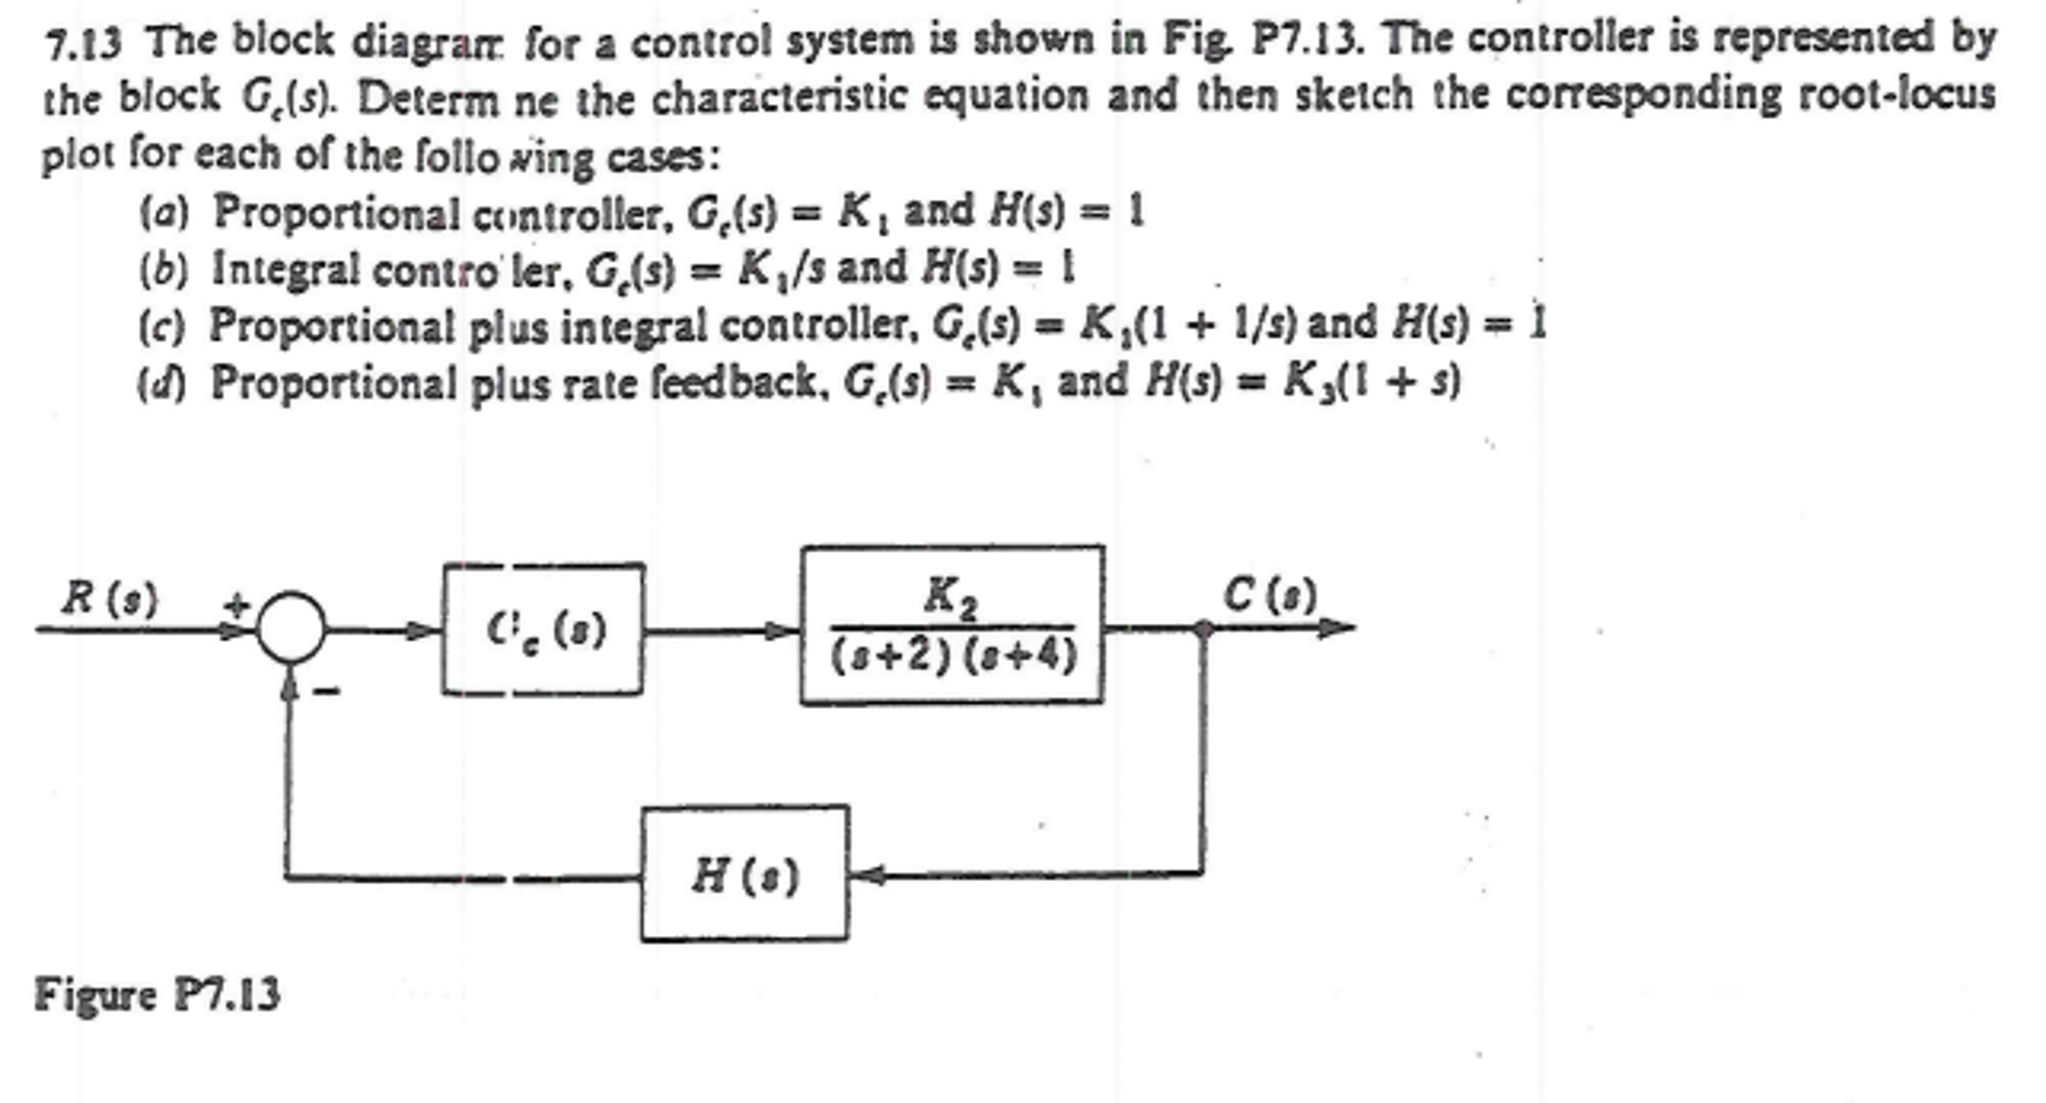 Question: The block diagram for a control system is shown in Fig. P7.13.  The controller is represented by t.